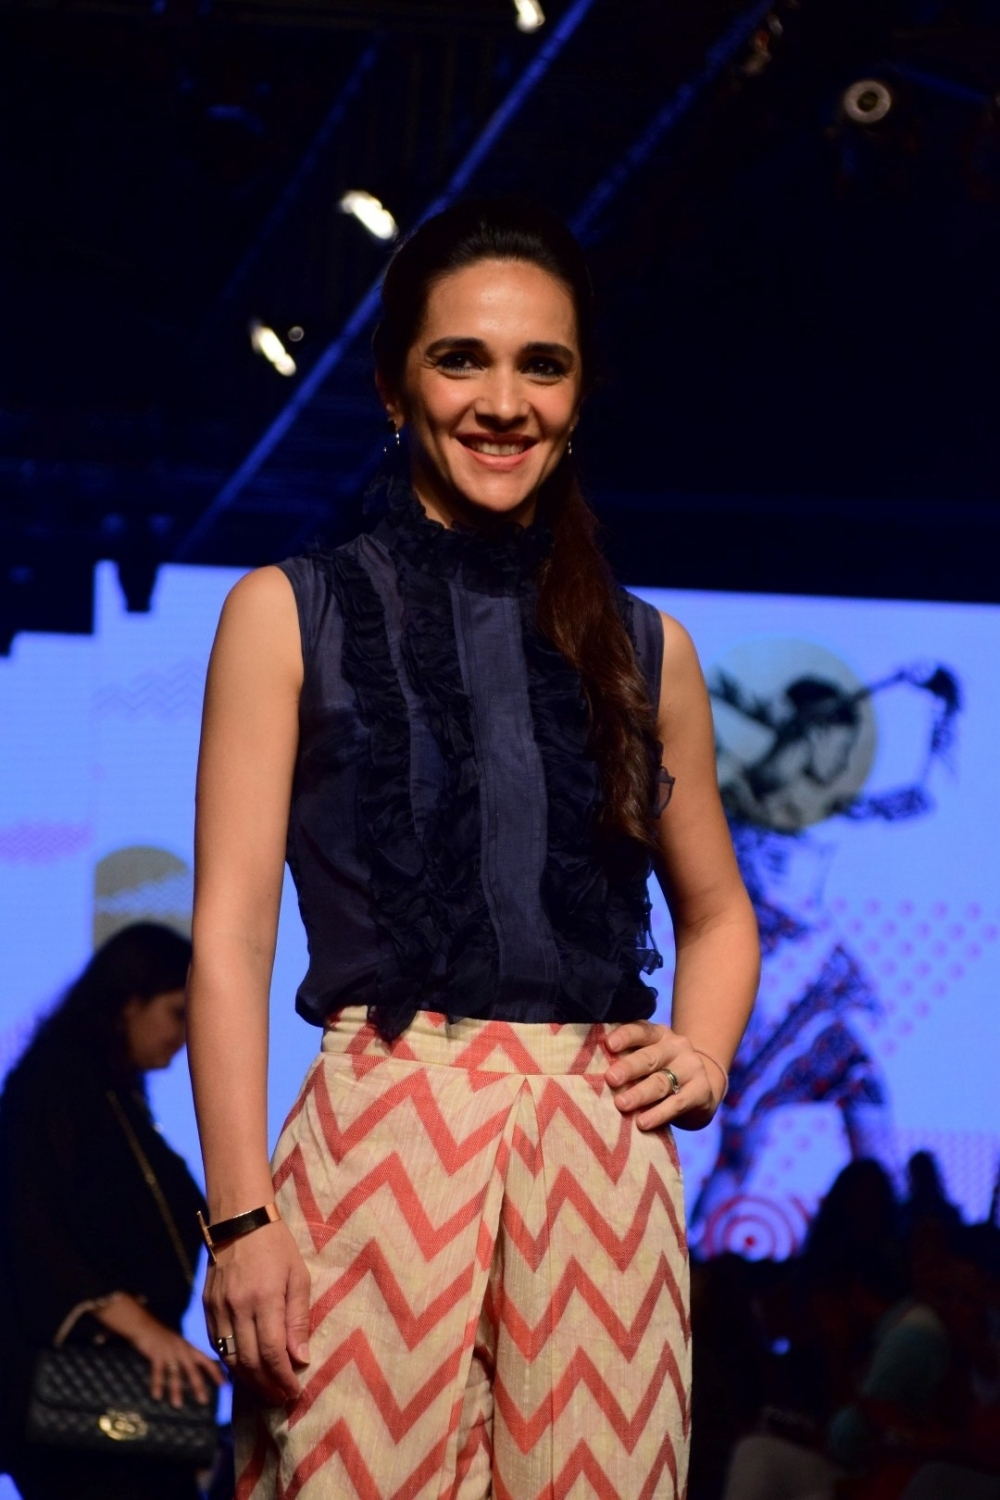 Mumbai: Actress Tara Sharma during the Lakme Fashion Week Summer/Resort 2017, in Mumbai, on Feb 3, 2017. (Photo: IANS)